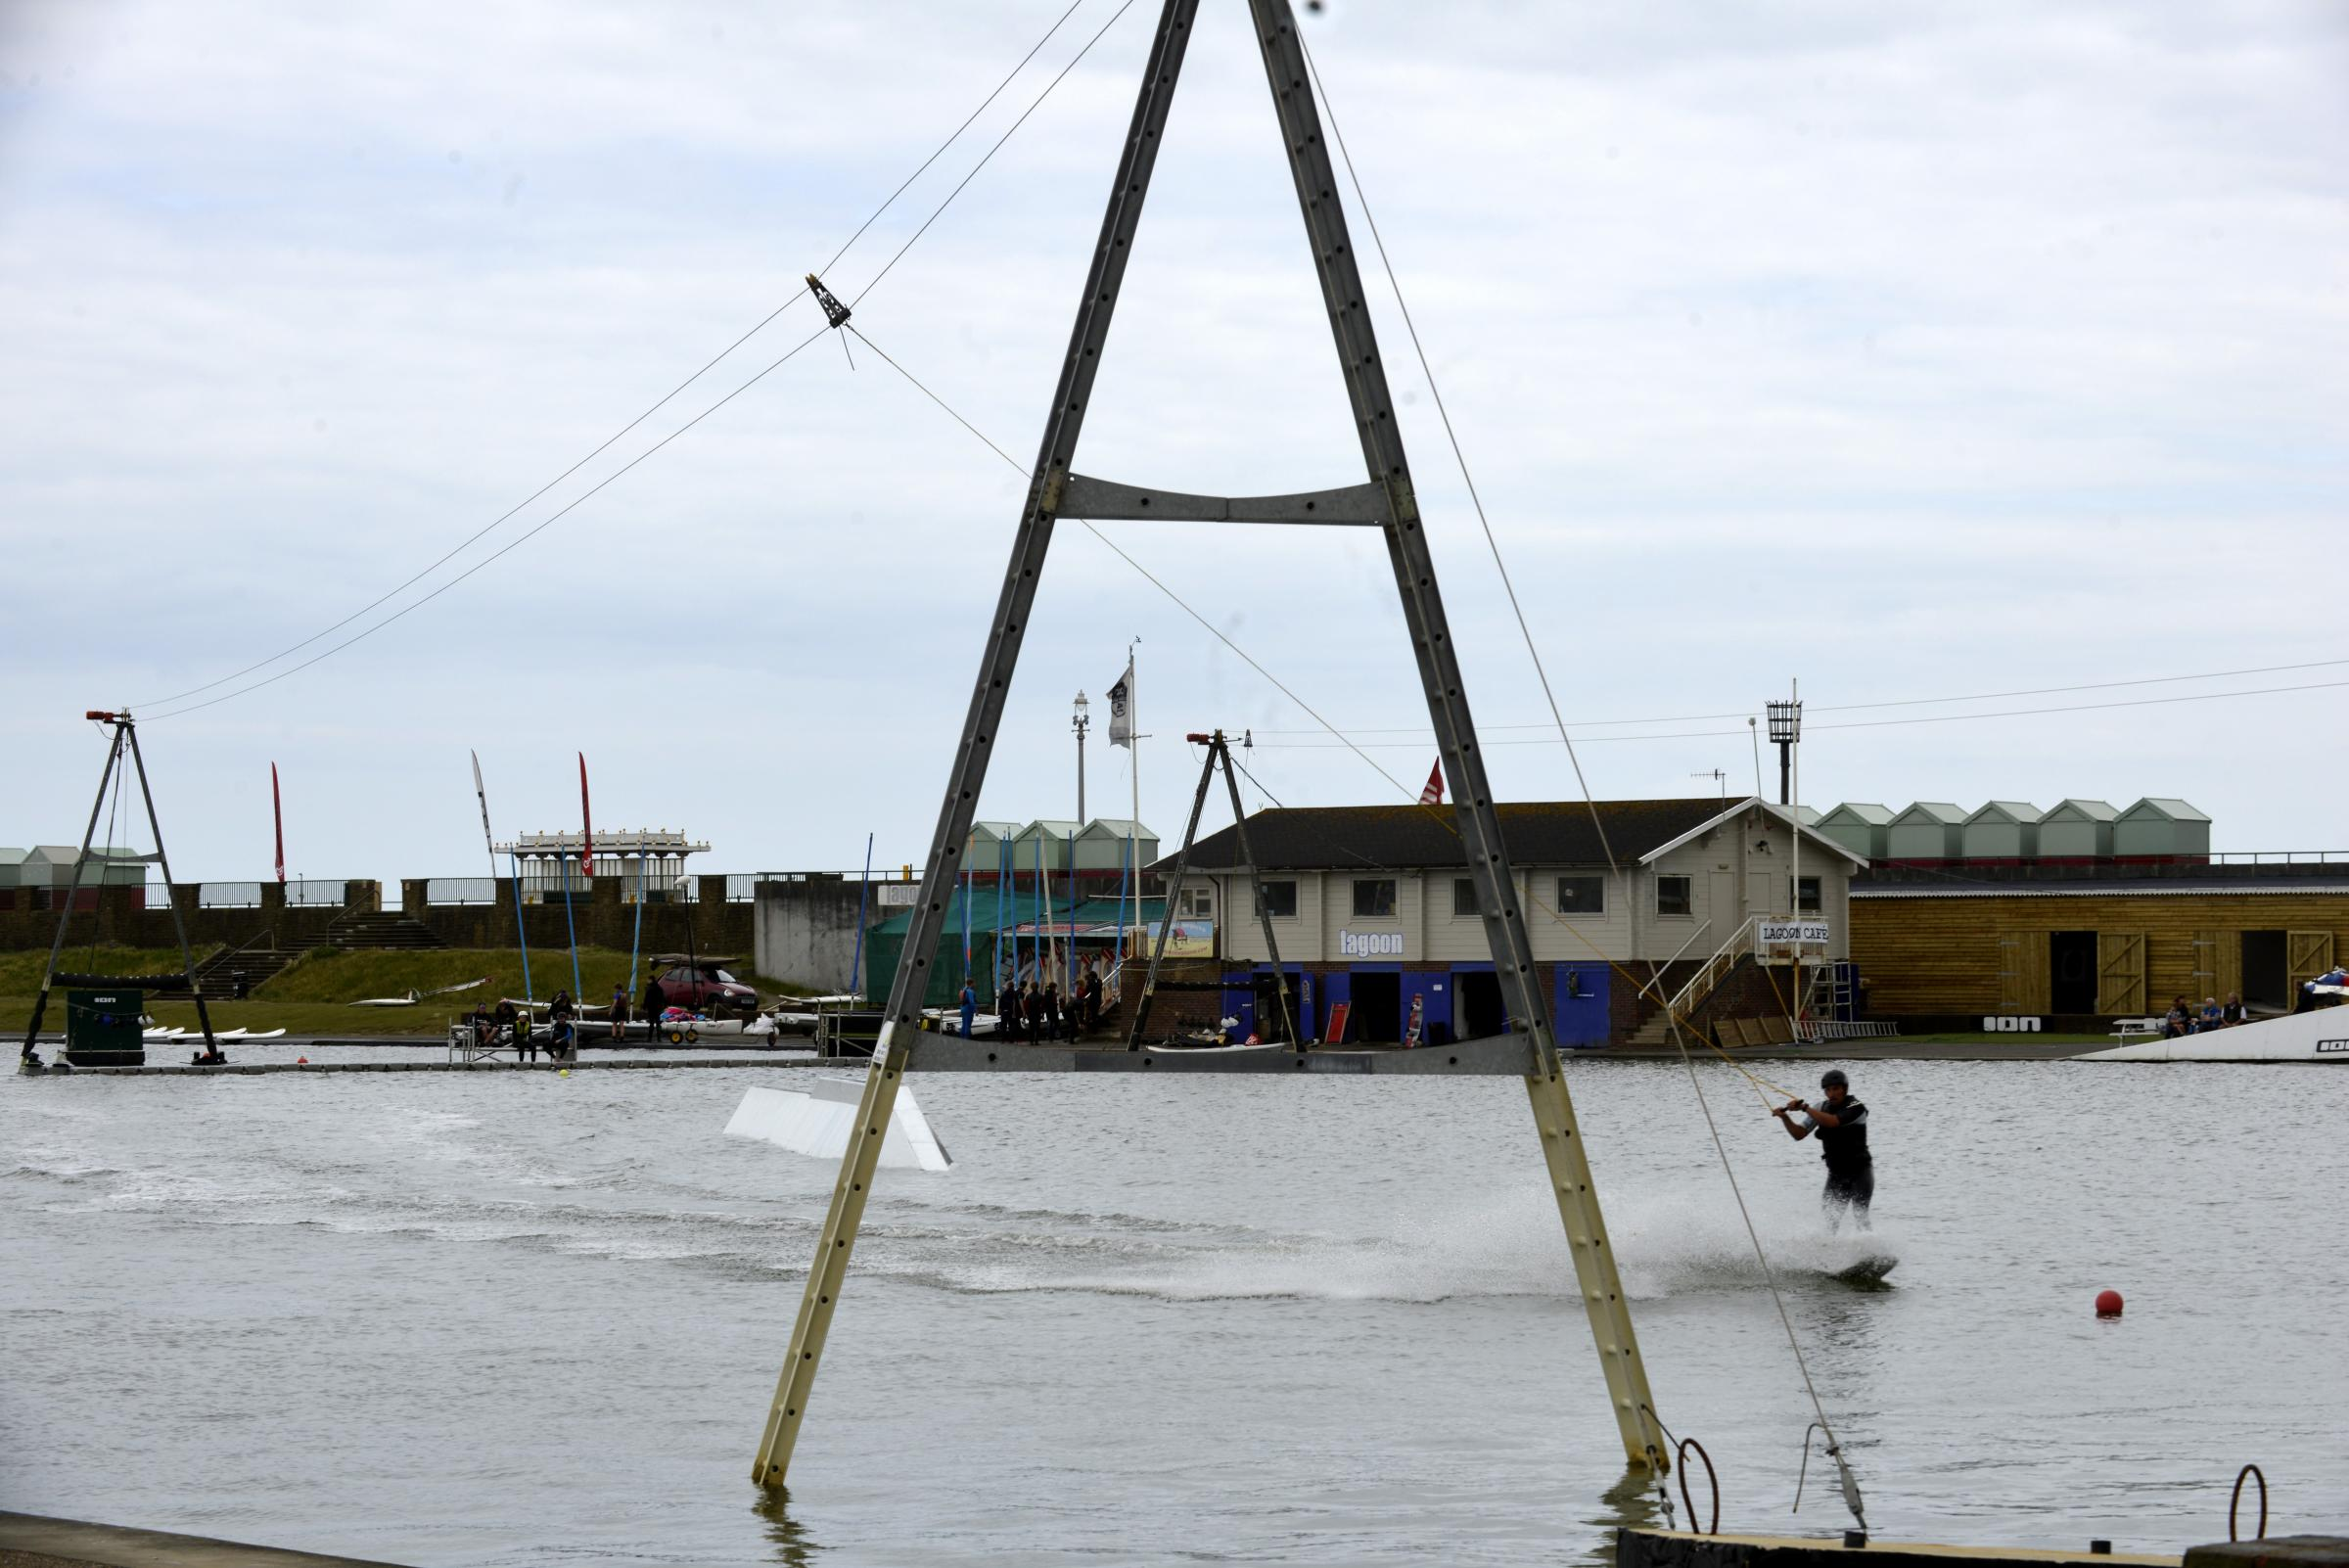 Wakeboarding is a popular activity at Hove Lagoon